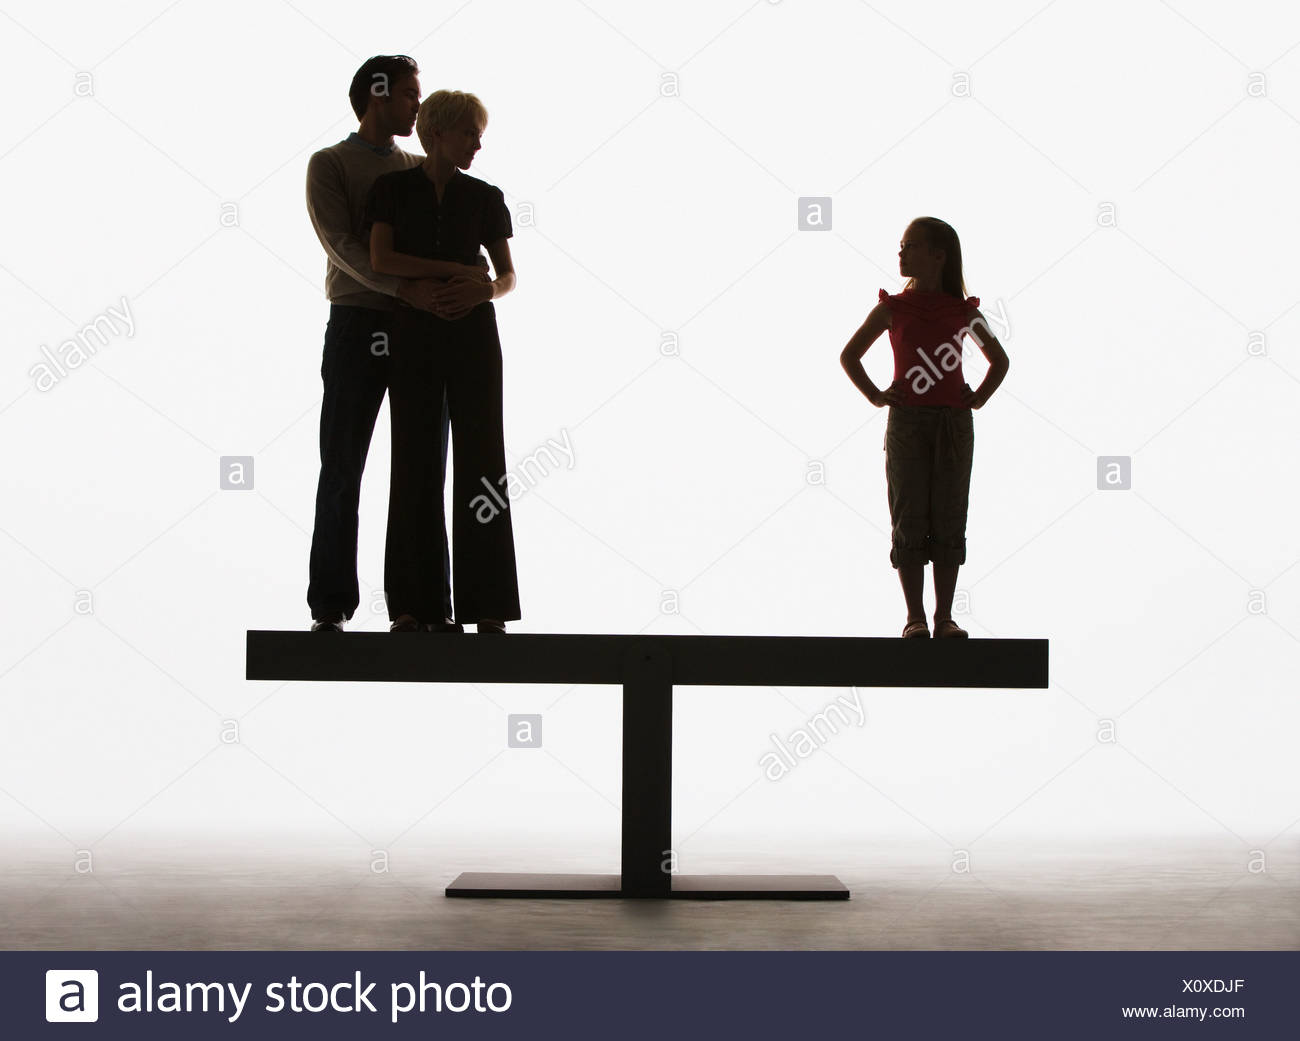 Couple and young girl standing on opposite ends of a plank - Stock Image